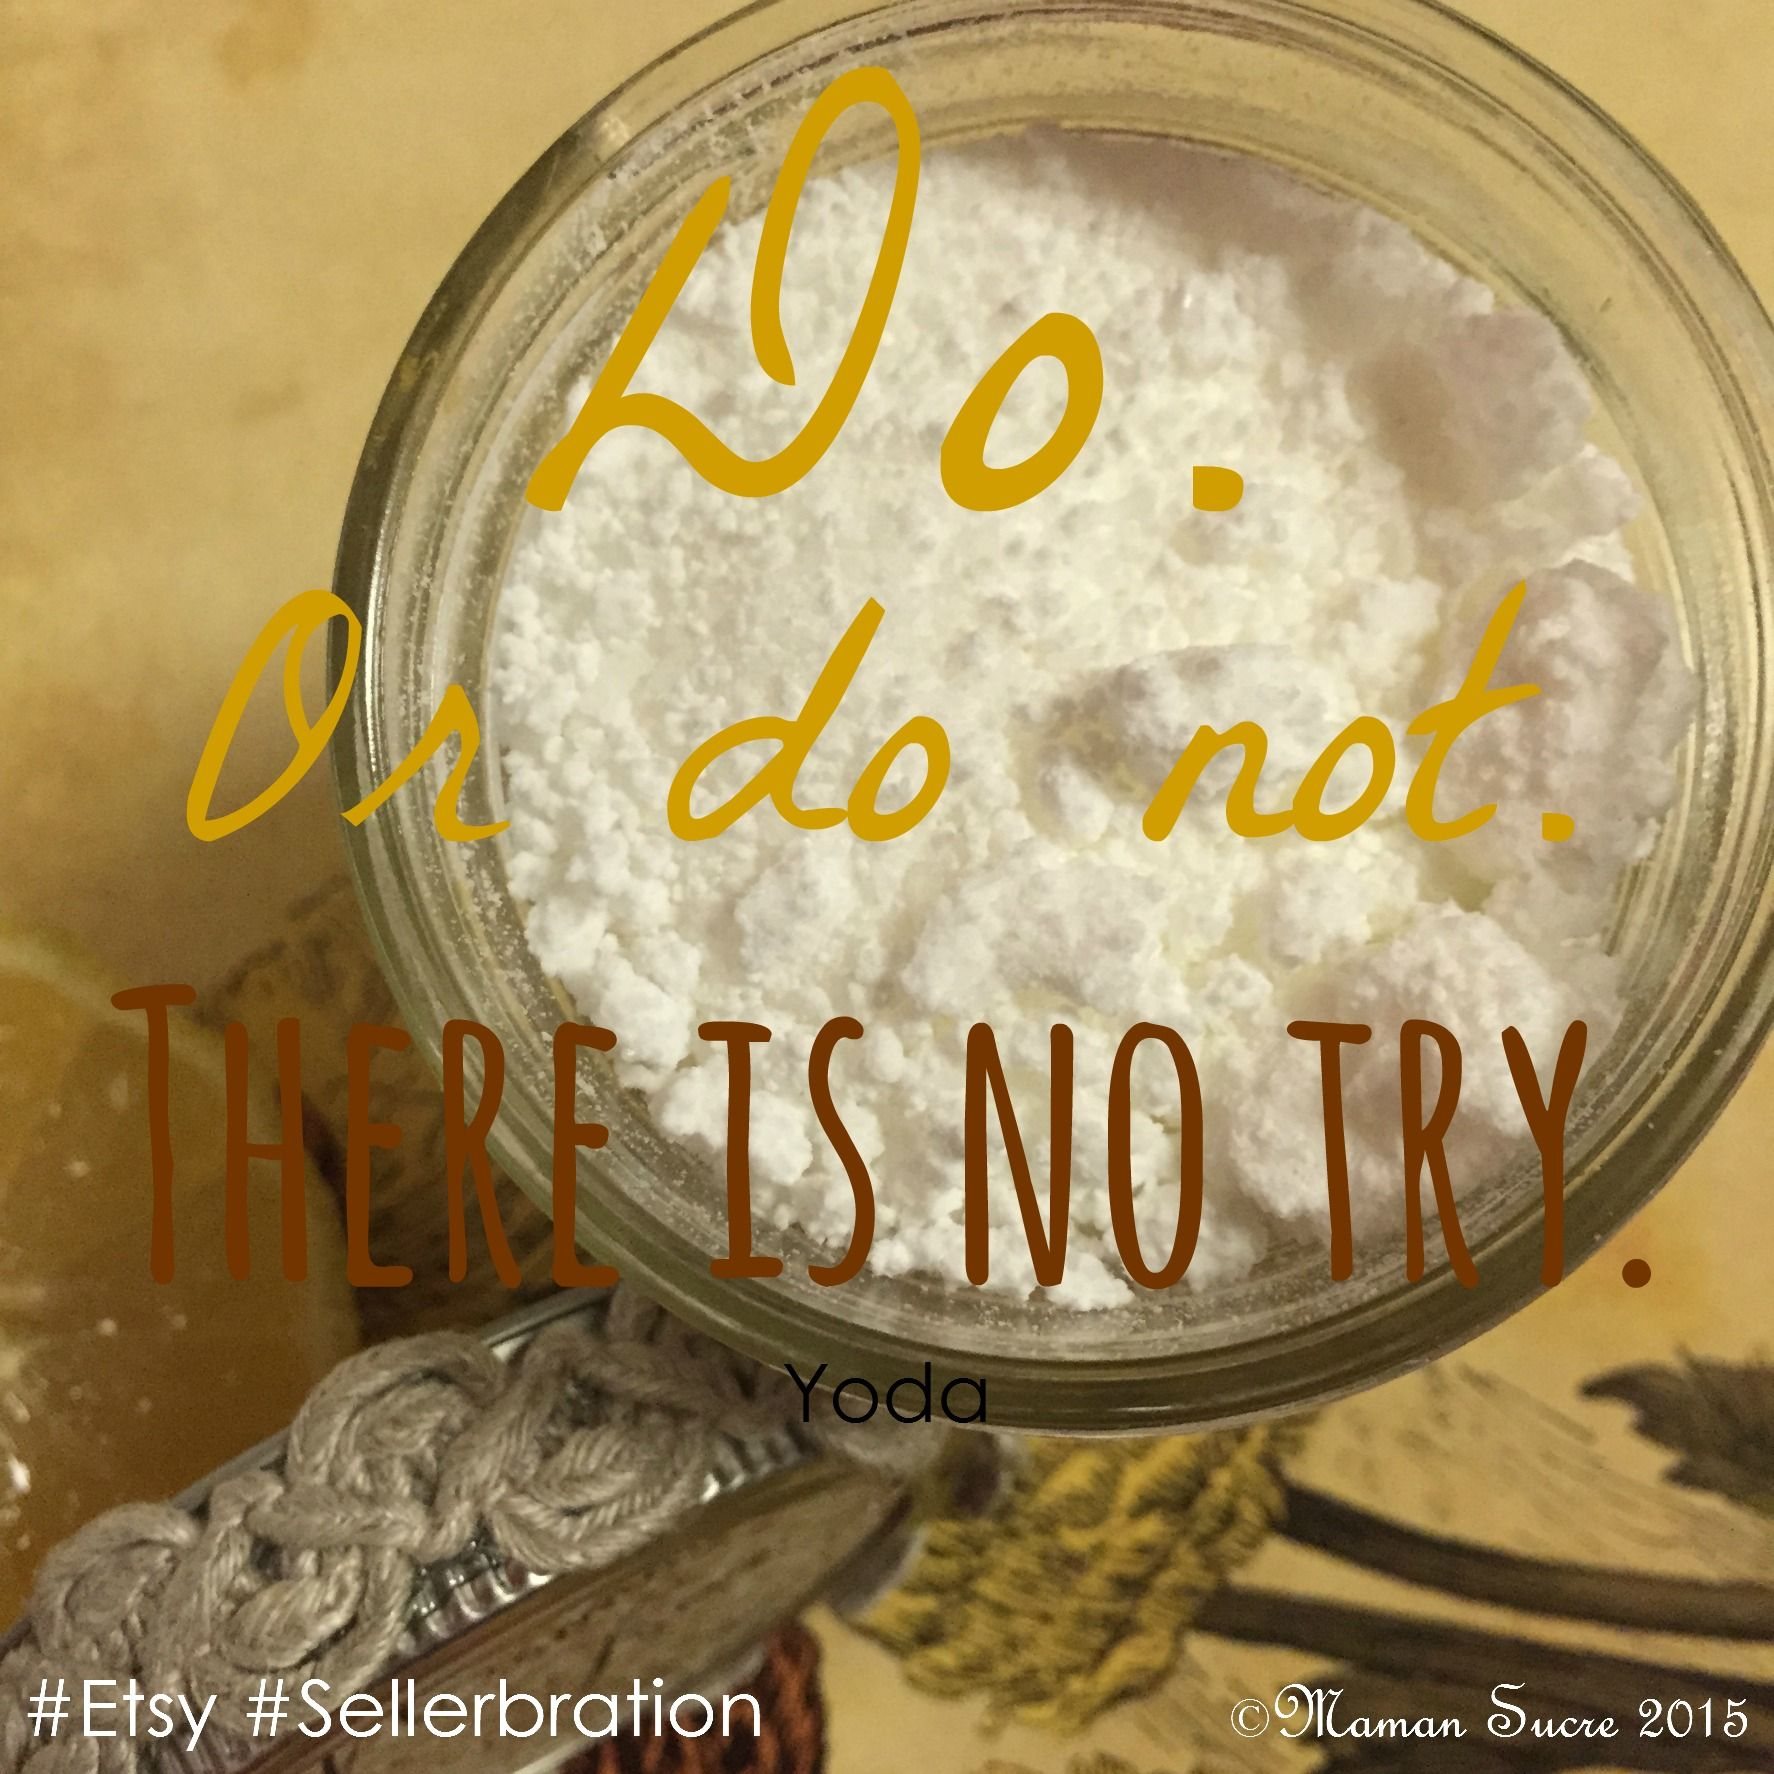 """""""Do. Or do not. There is no try."""" -Yoda  #Etsy #Sellerbration #Nasdaq #ipo #greenbeauty"""